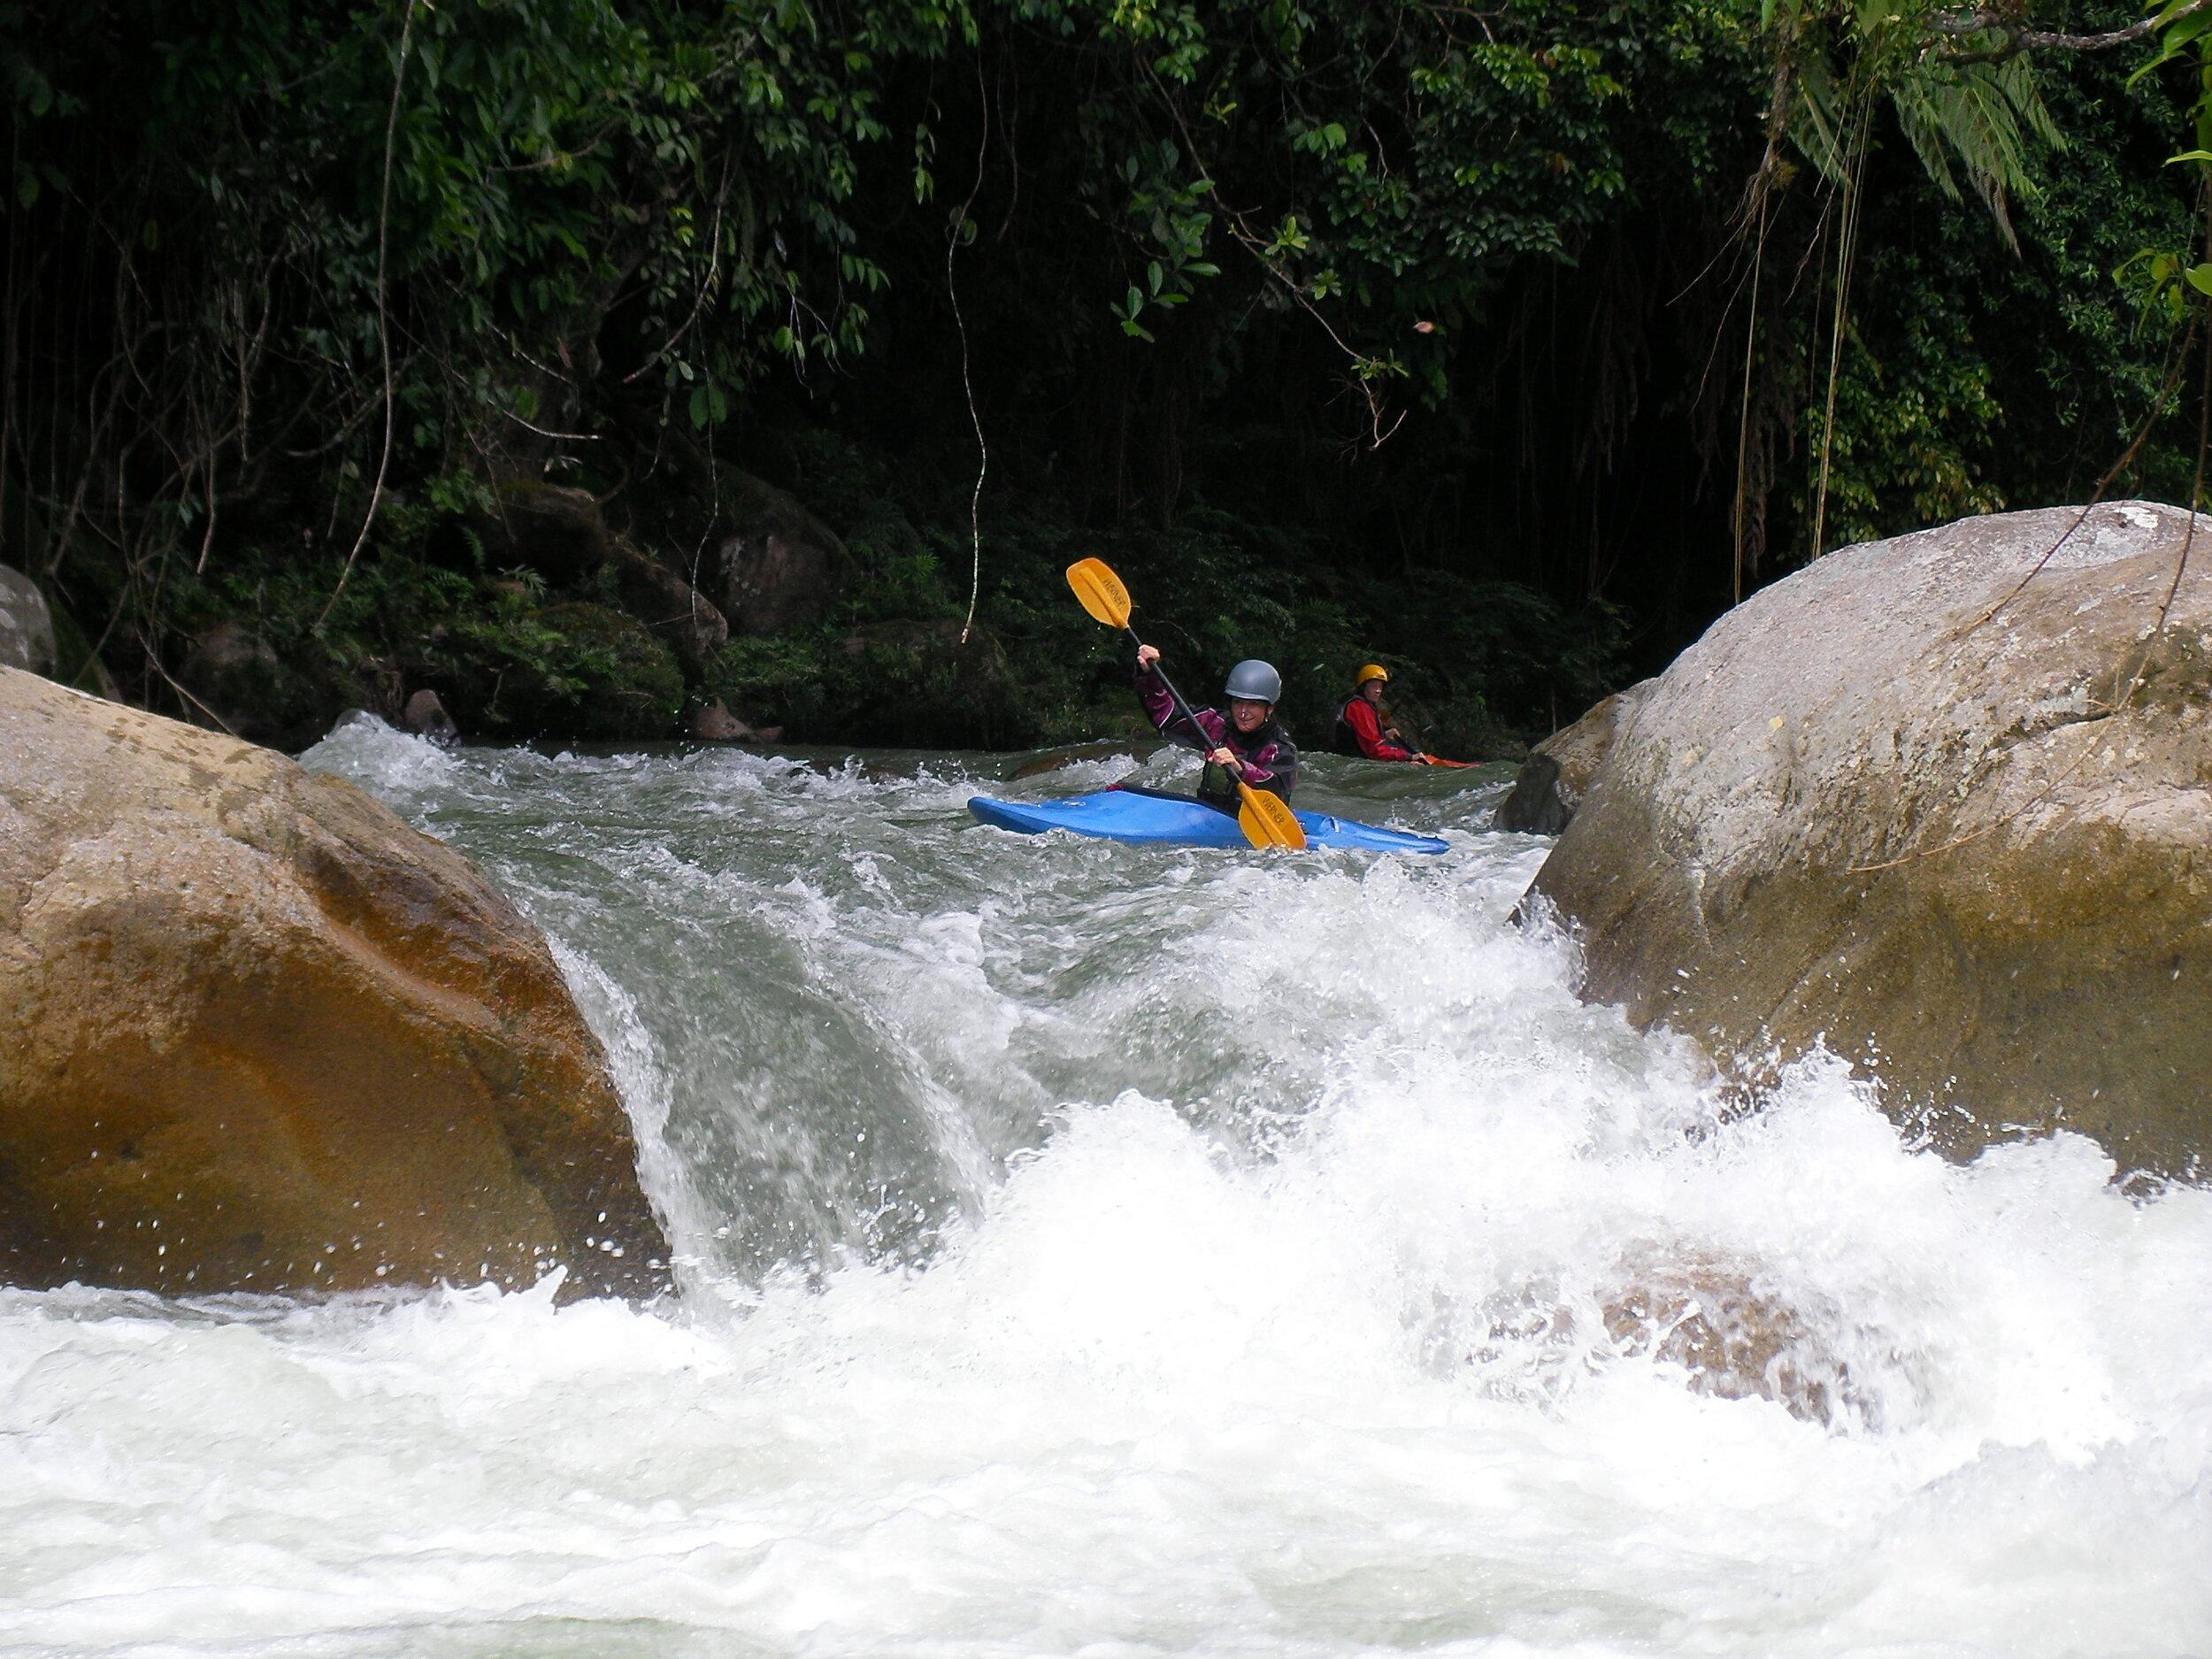 UPPER MISSAHUALLI BOOF SESSIONS < THE PERFECT PLACE TO PRACTICE AND PERFECT YOUR BOOF > WARM WATER CREEKING .